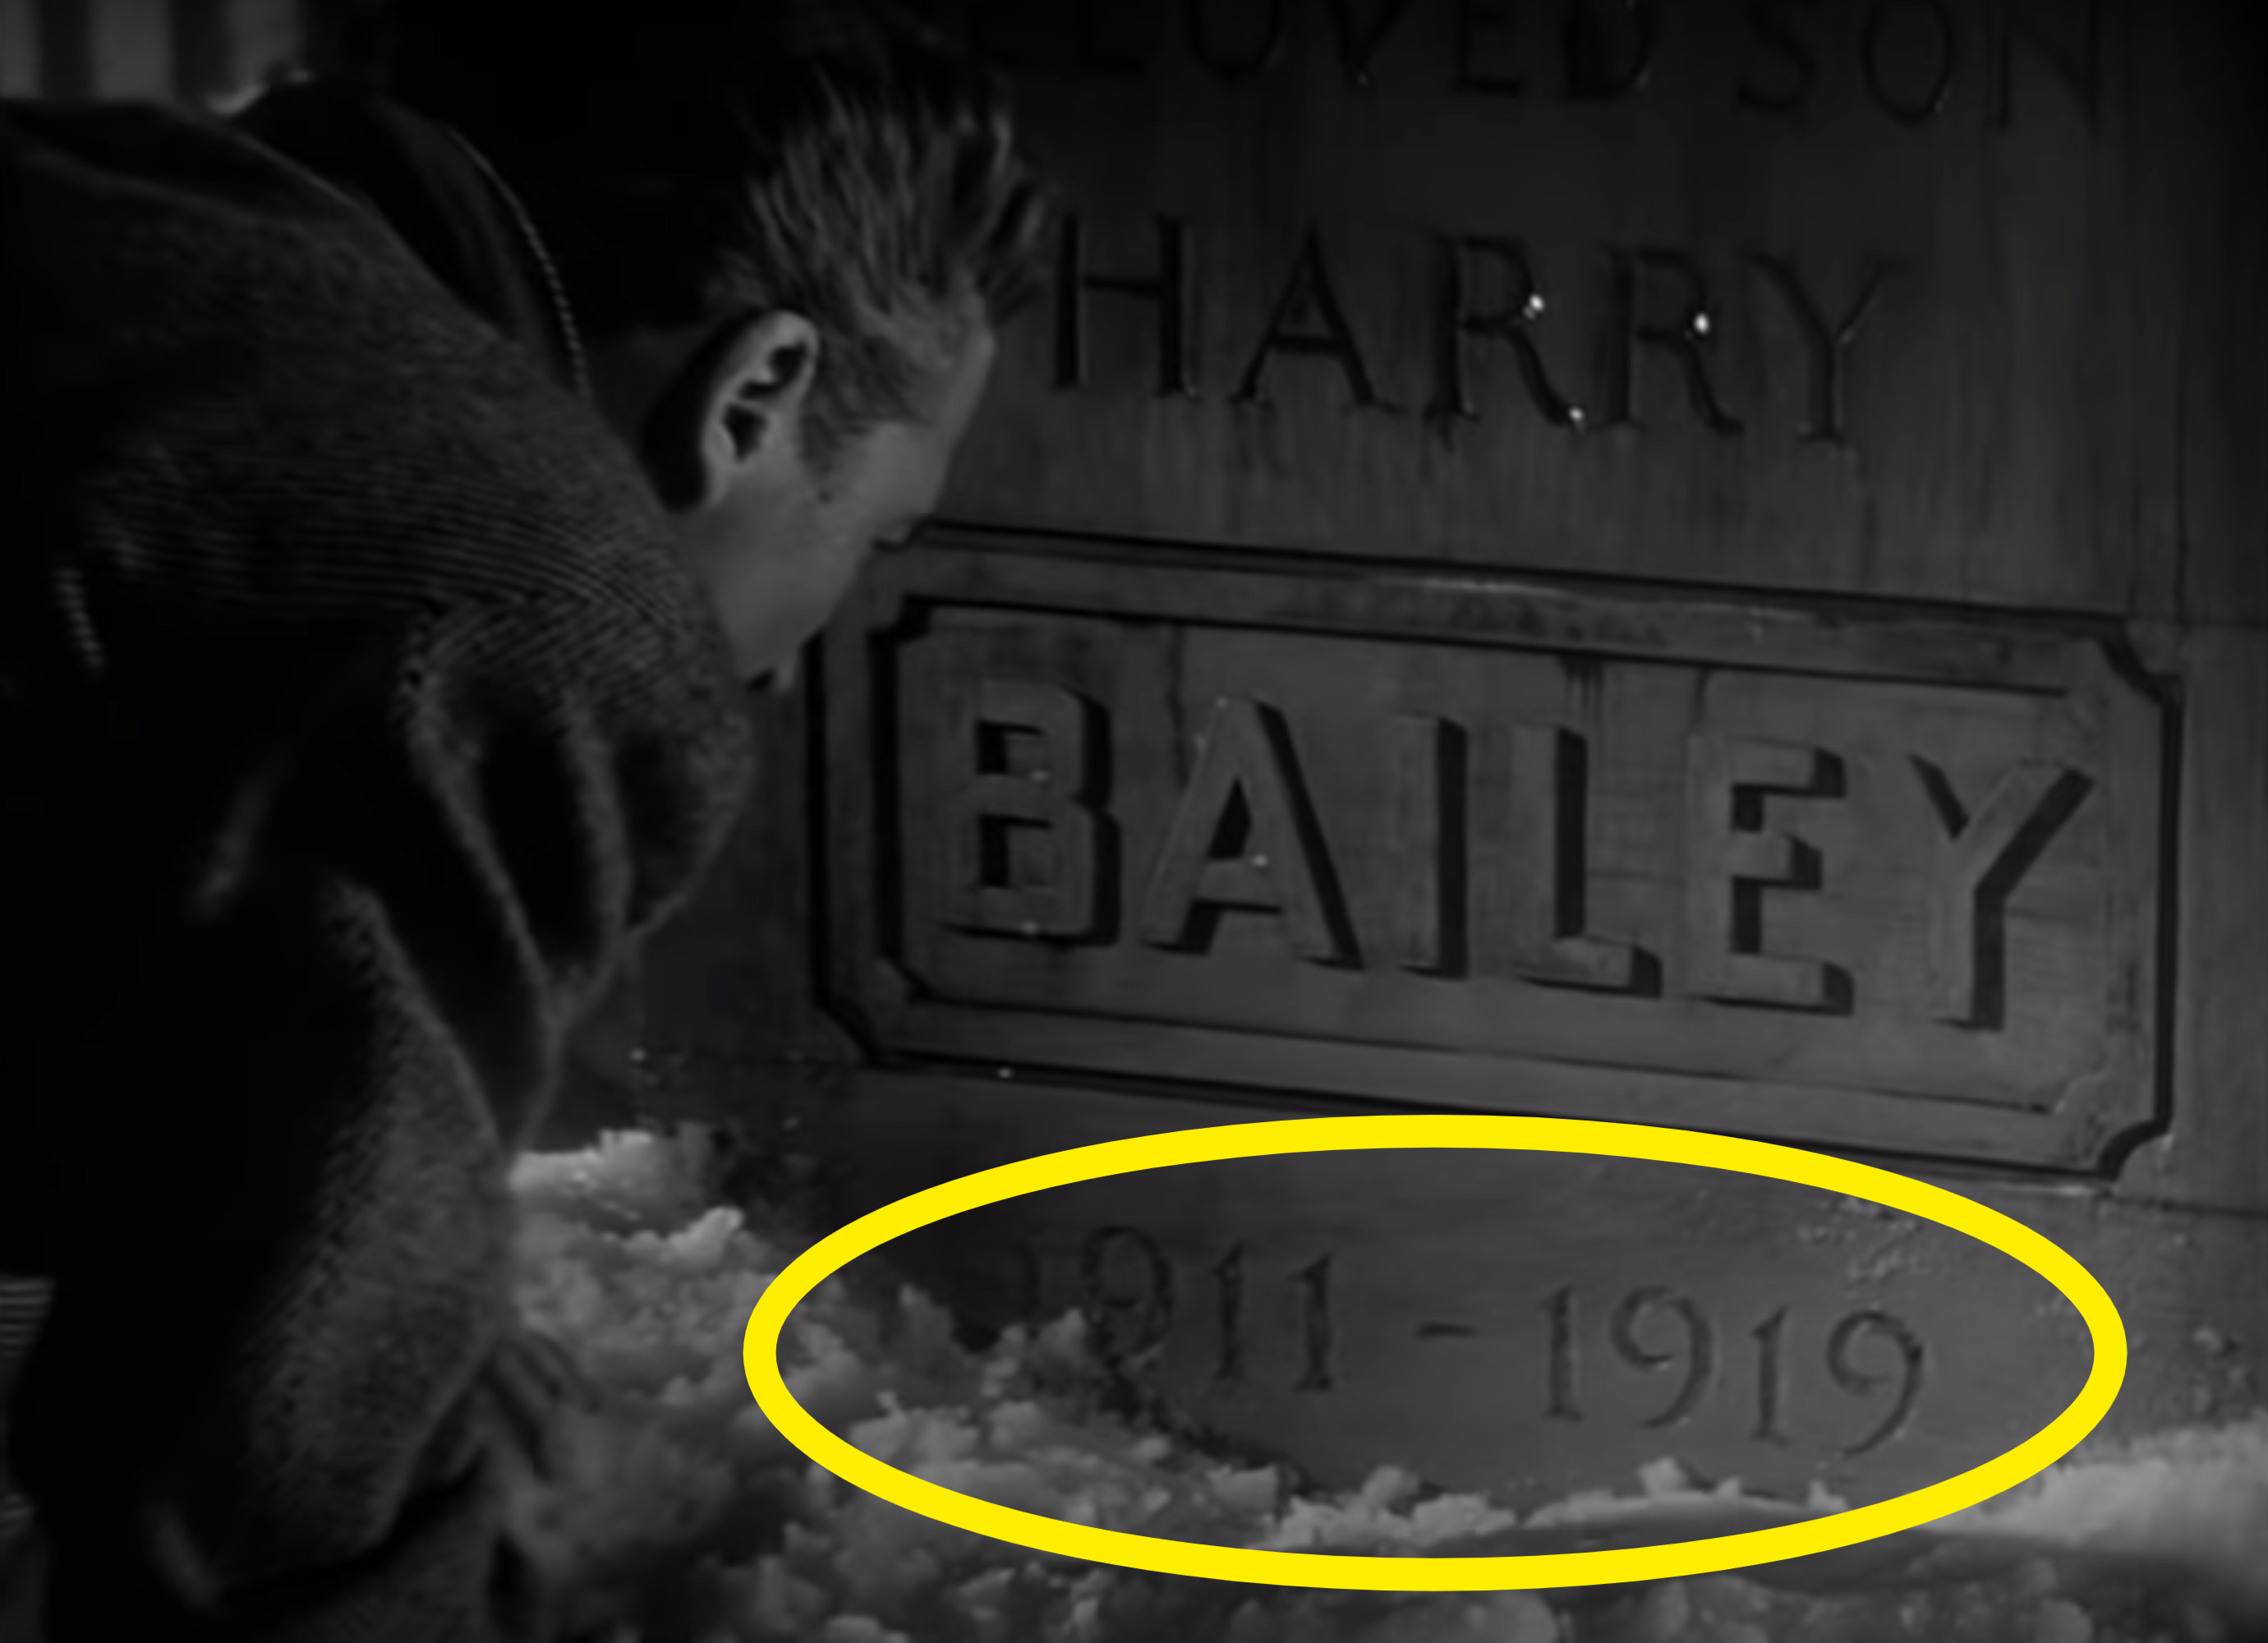 The grave says Harry Bailey 1911-1919